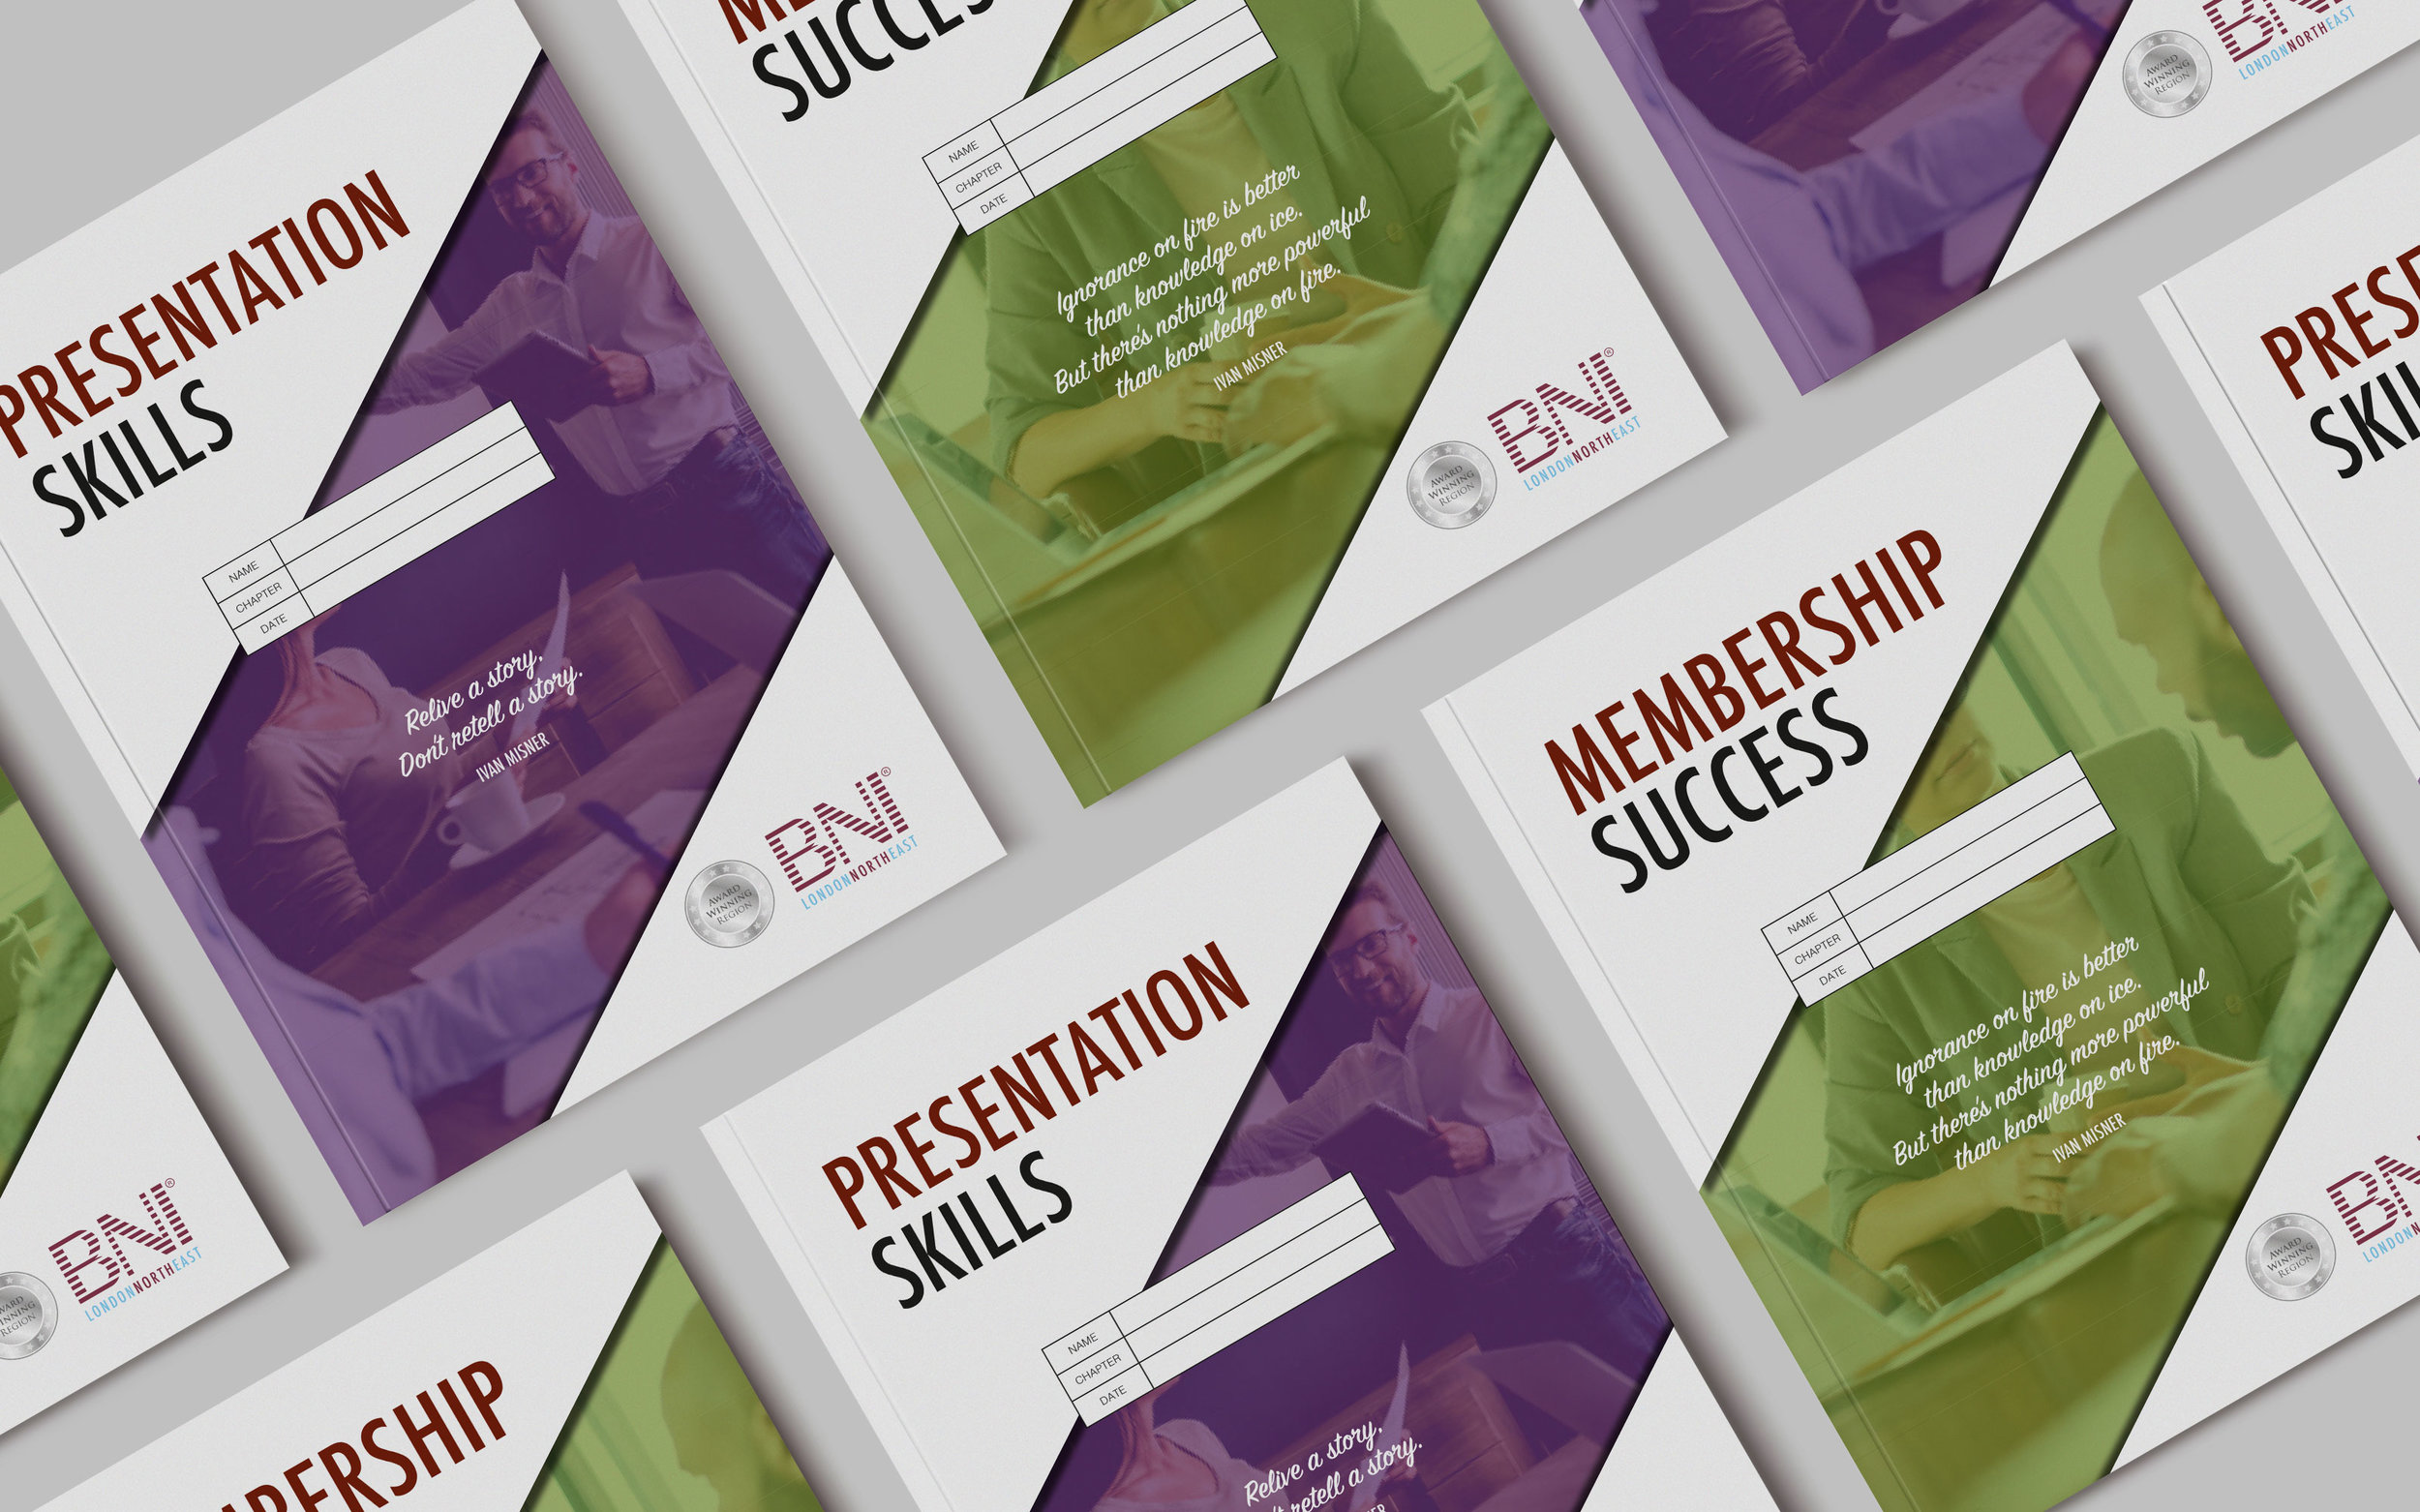 bni-lne-training-book-design-2.jpg